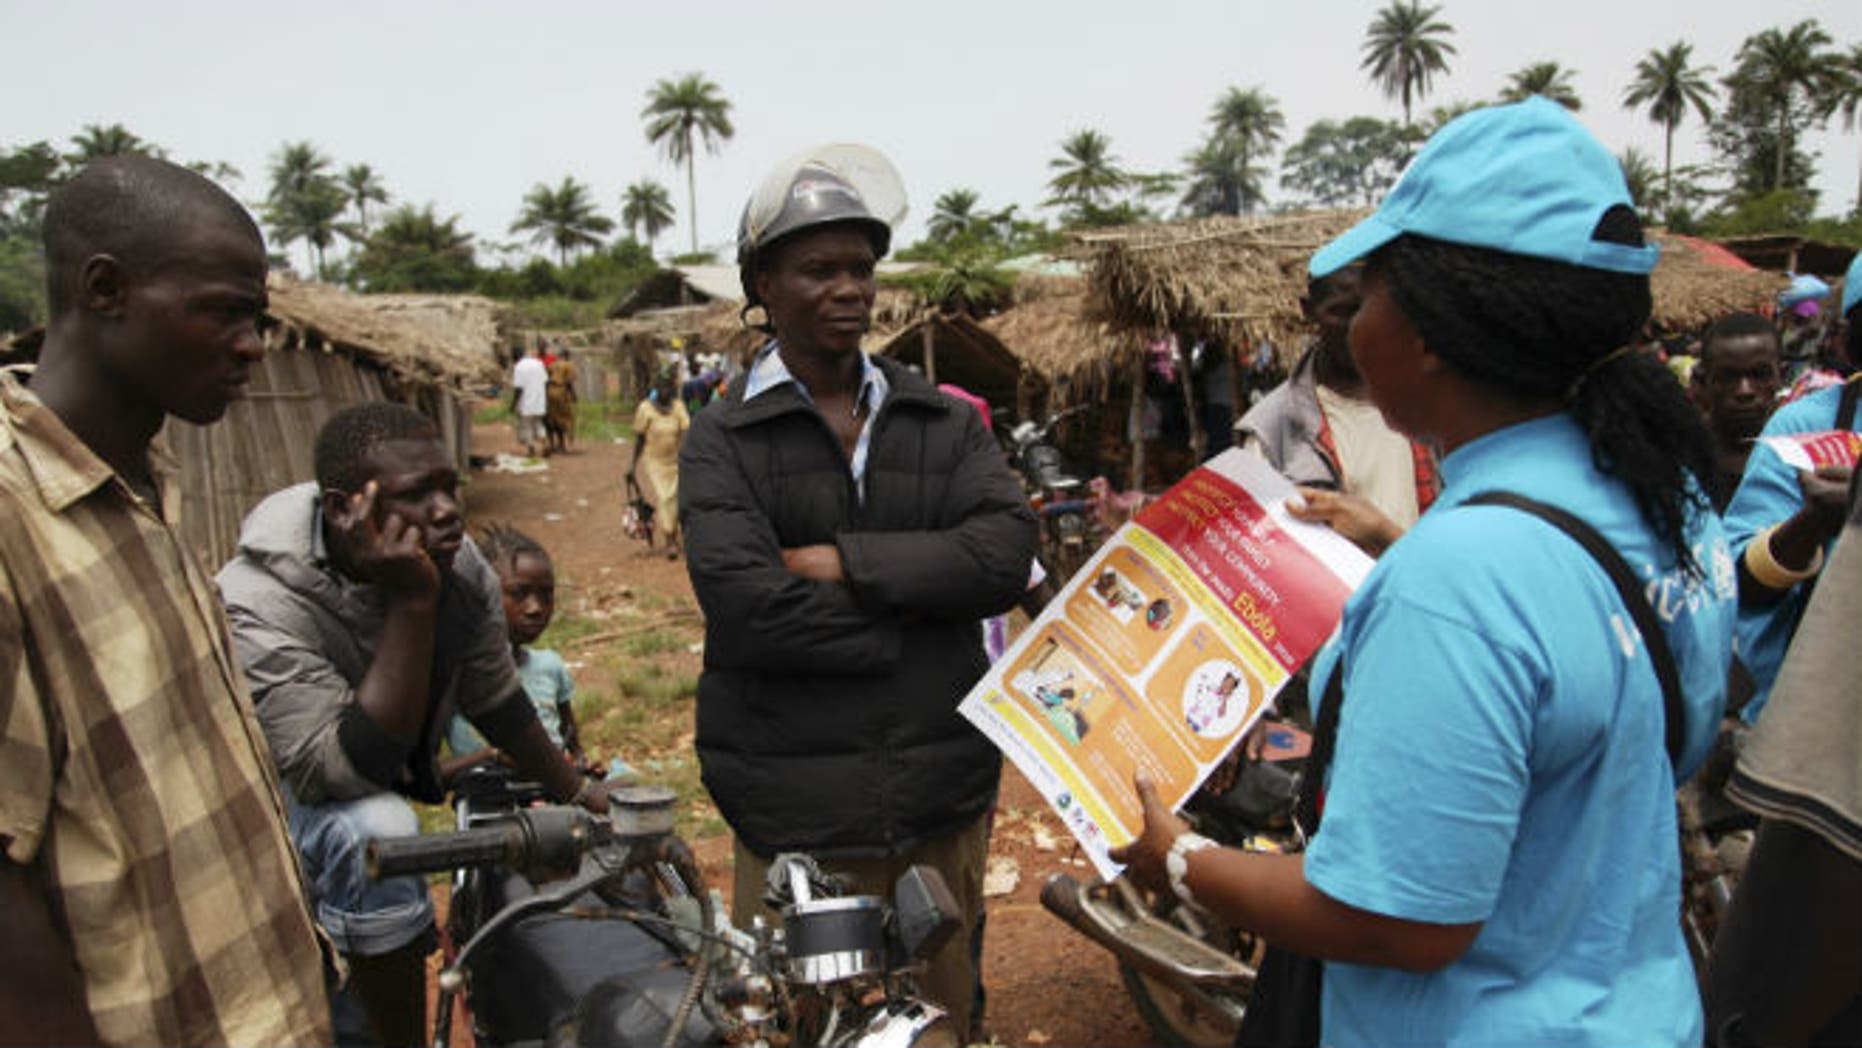 A UNICEF worker speaks with drivers of motorcycle taxis about the symptoms of Ebola virus disease (EVD) and best practices to help prevent its spread, in the city of Voinjama, in Lofa County, Liberia in this April 2014 UNICEF handout photo. (REUTERS/Ahmed Jallanzo/UNICEF)